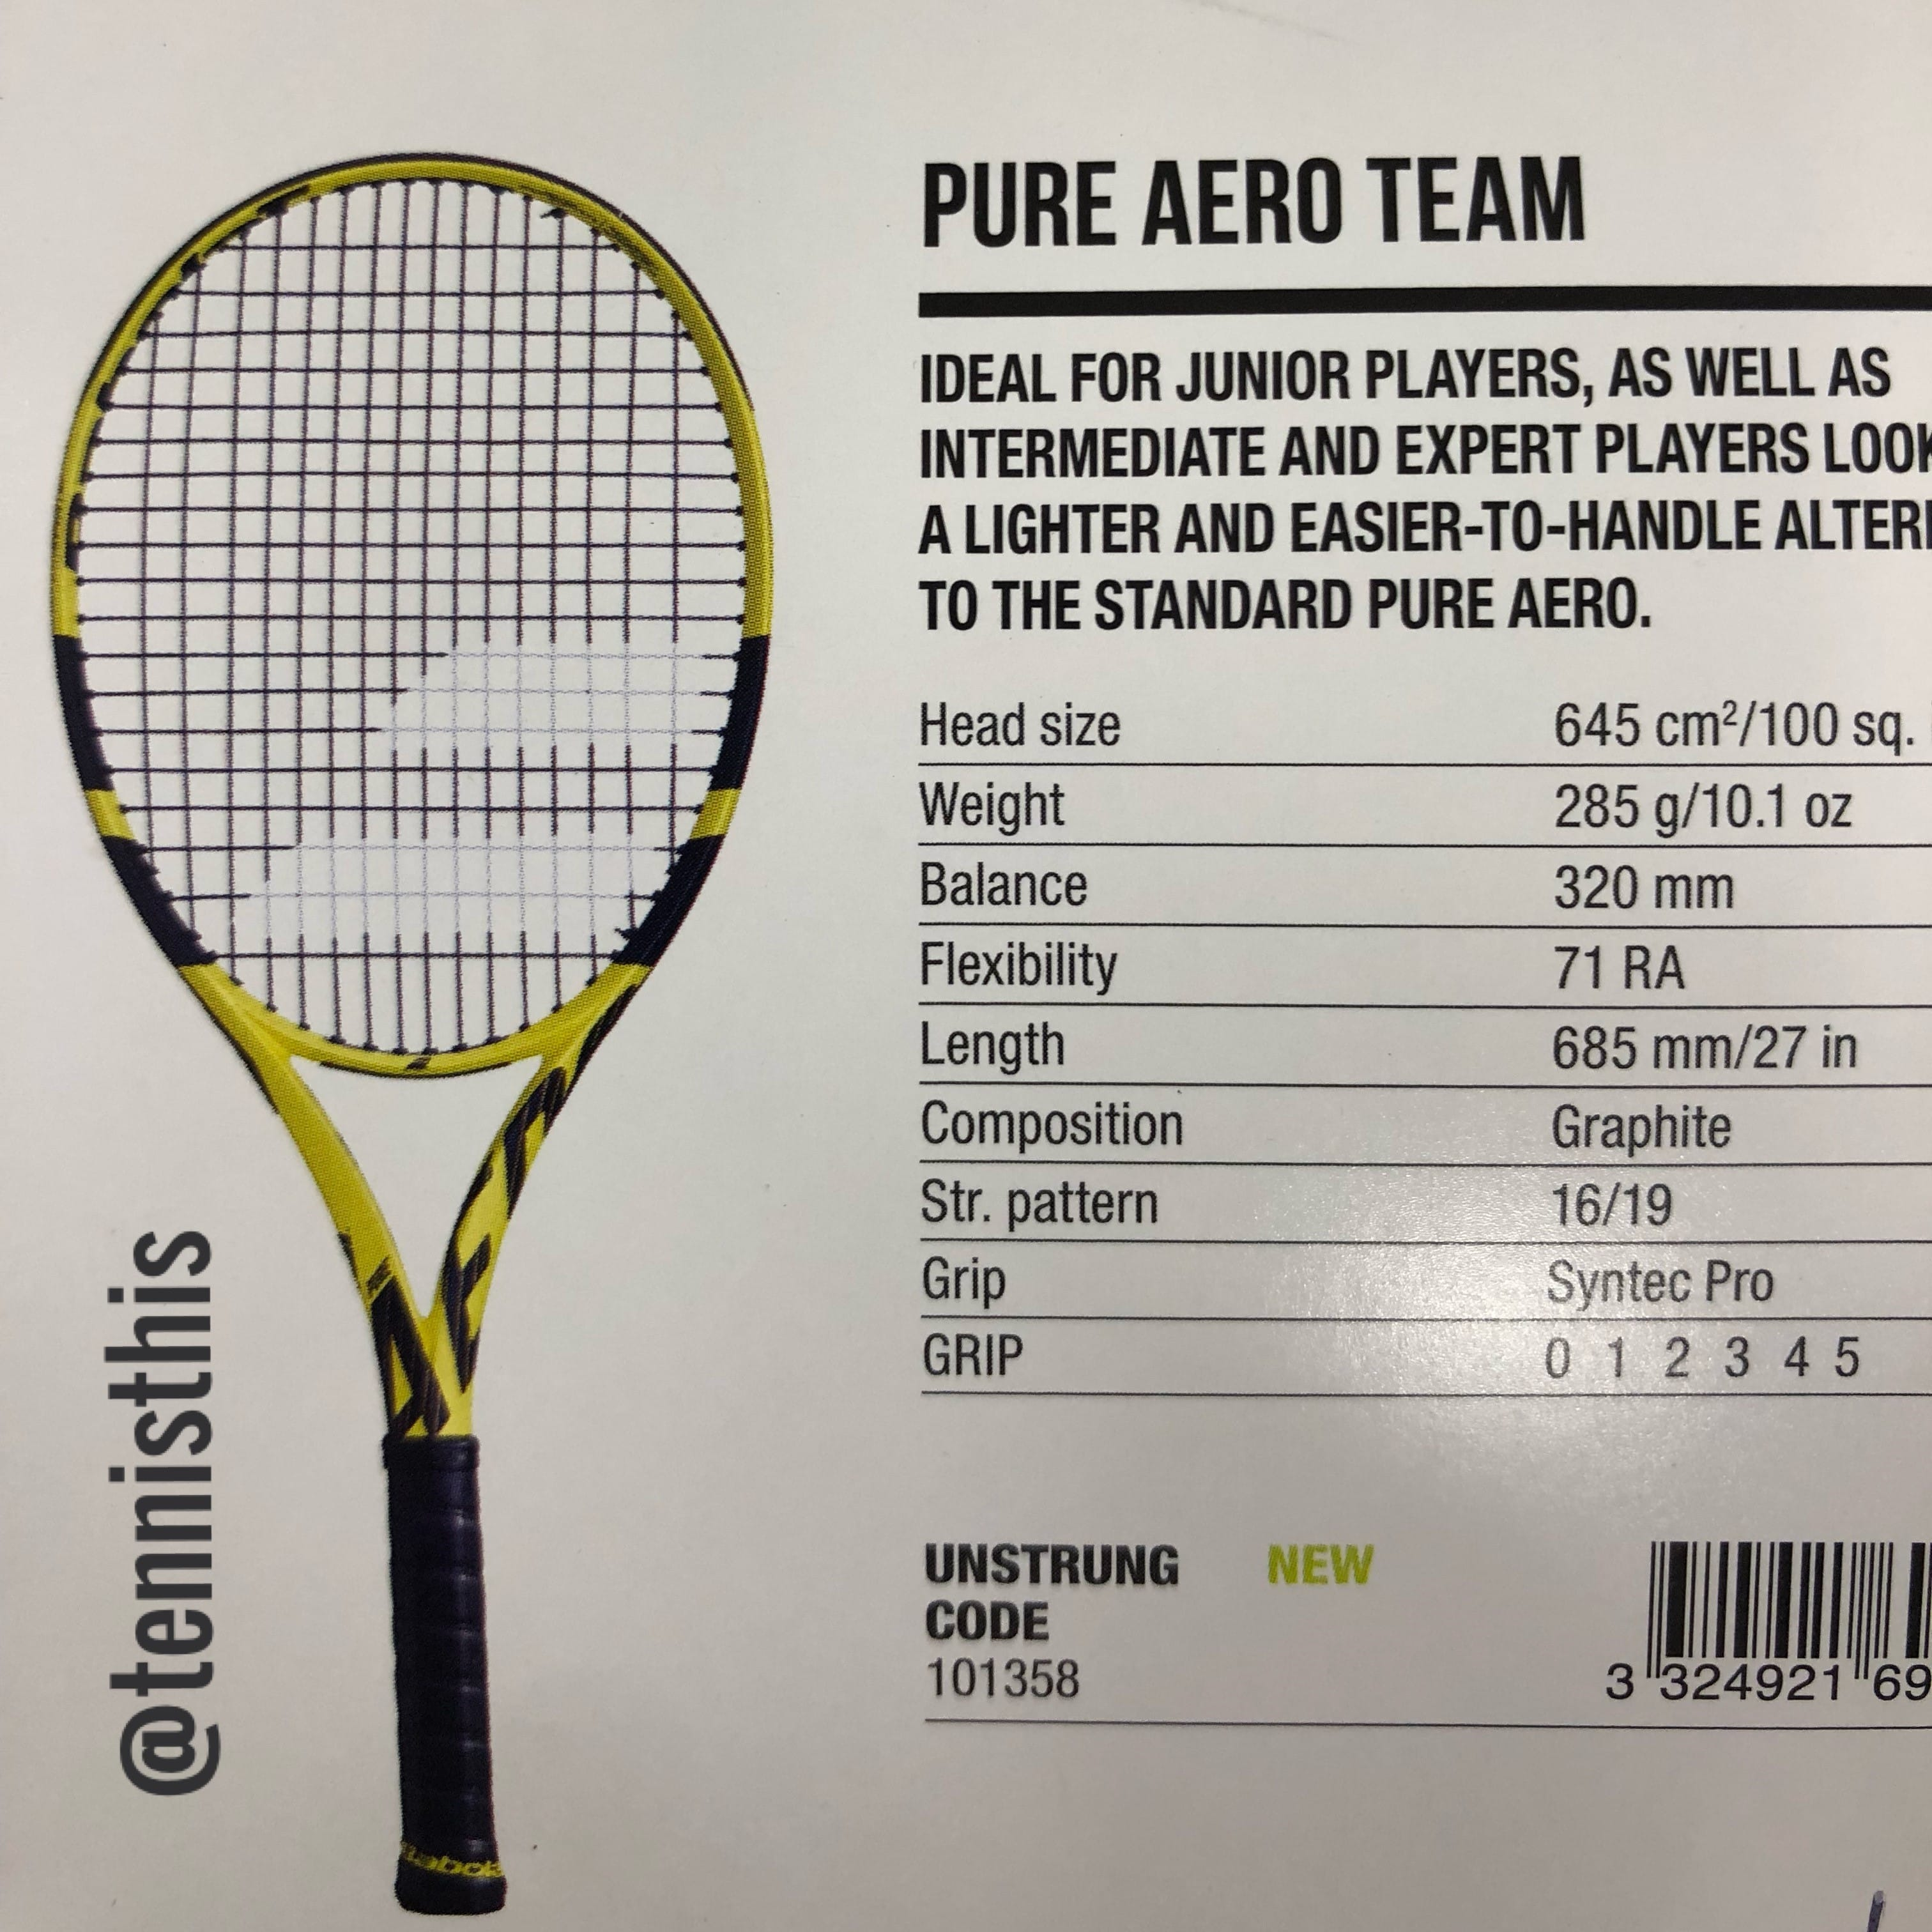 ba23310a663 2019 Babolat Pure Aero | Check out the specs on the 2019 Babolat ...